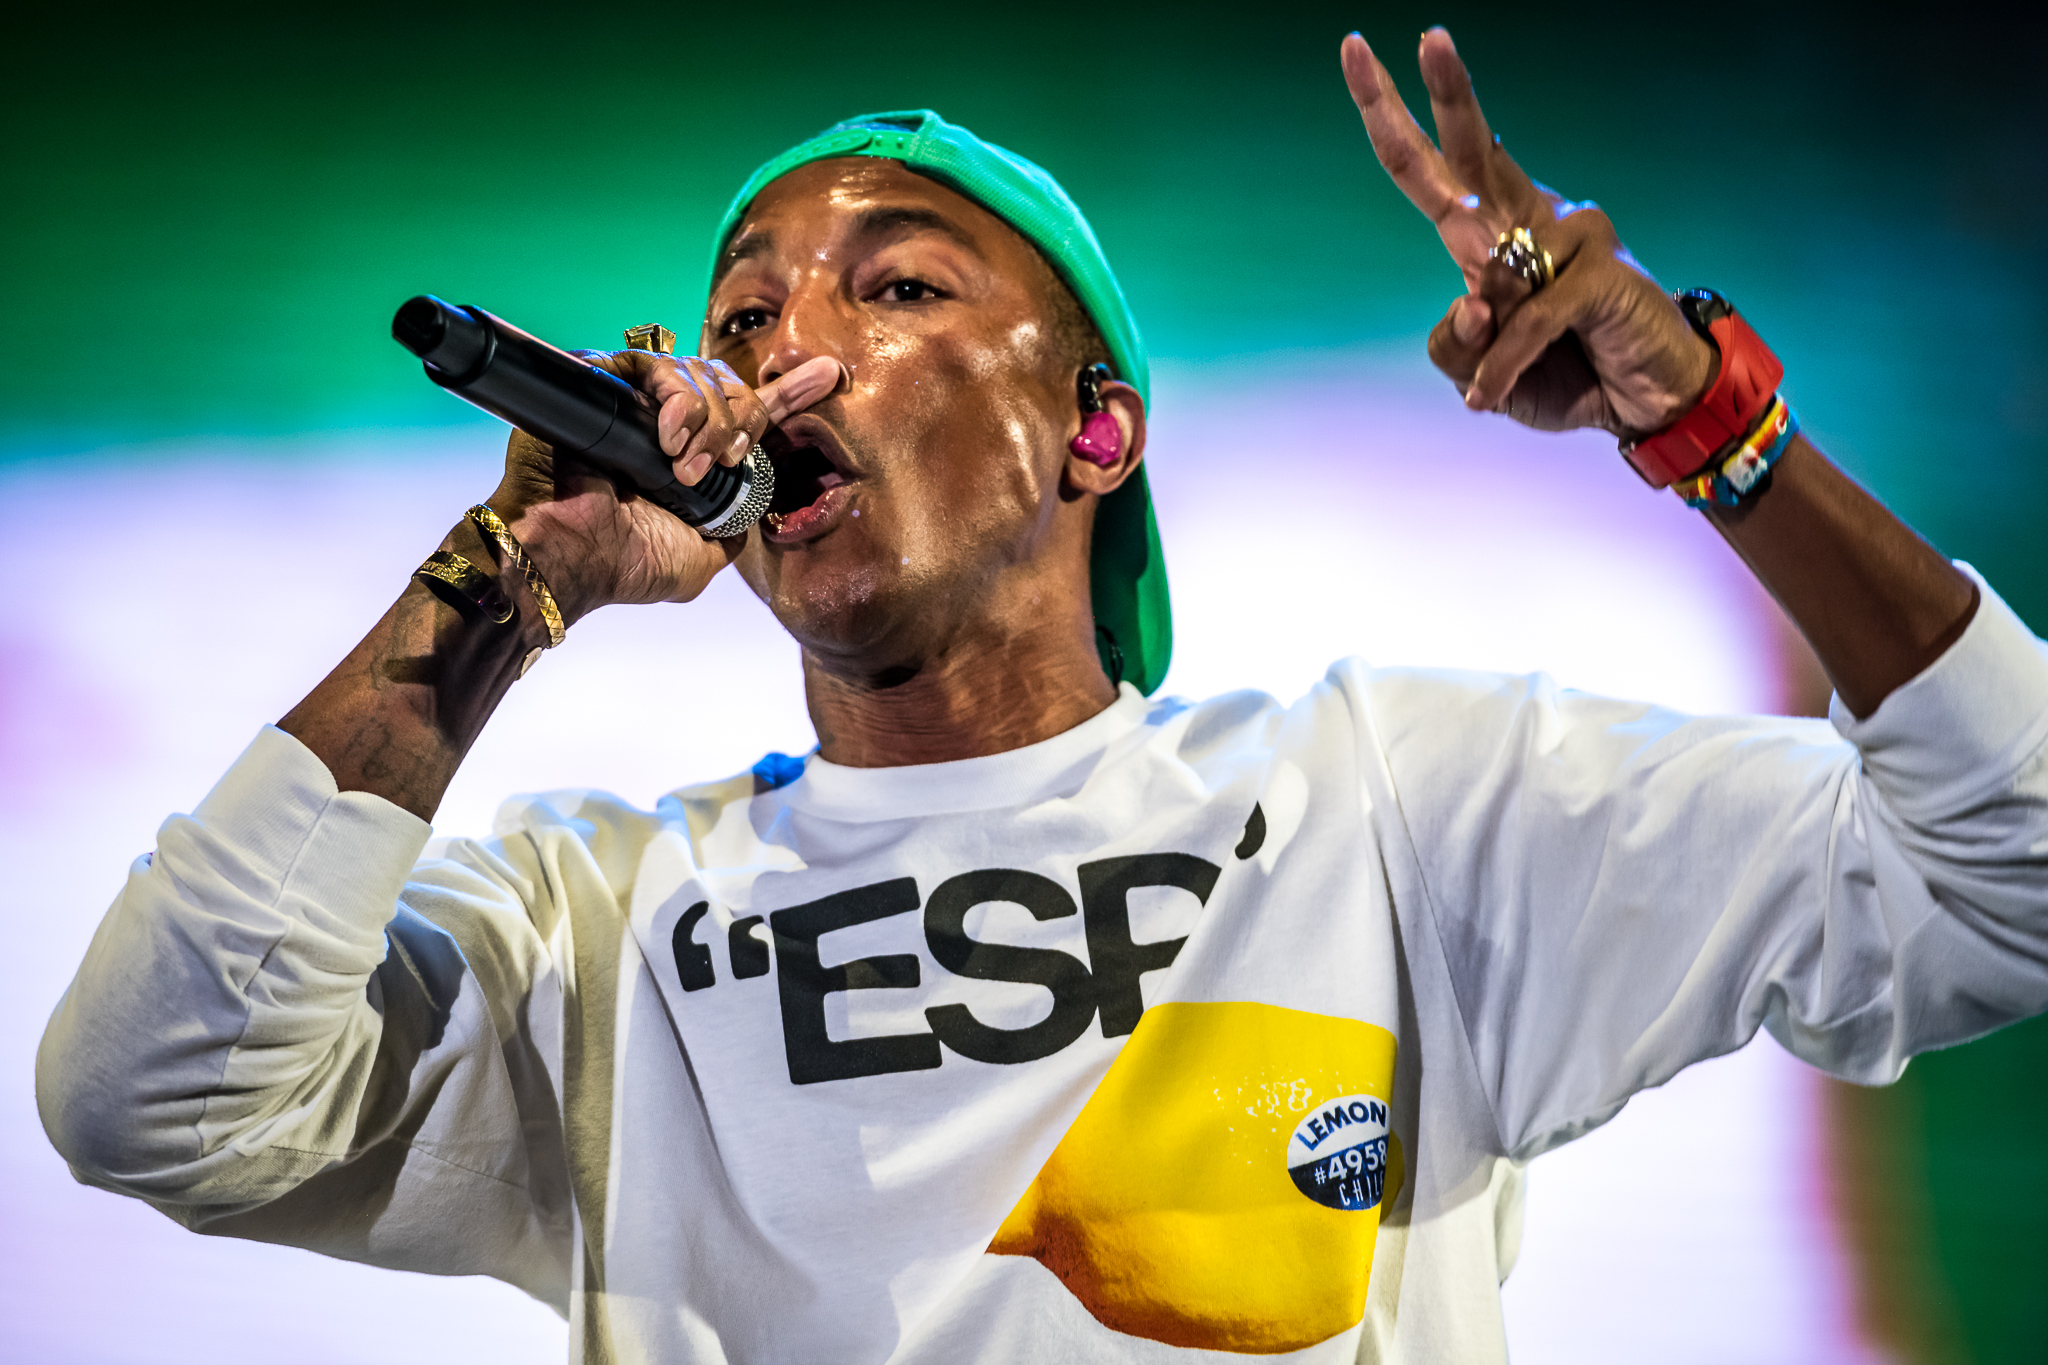 Get 'Happy' out of your rallies, Pharrell Williams warns Trump